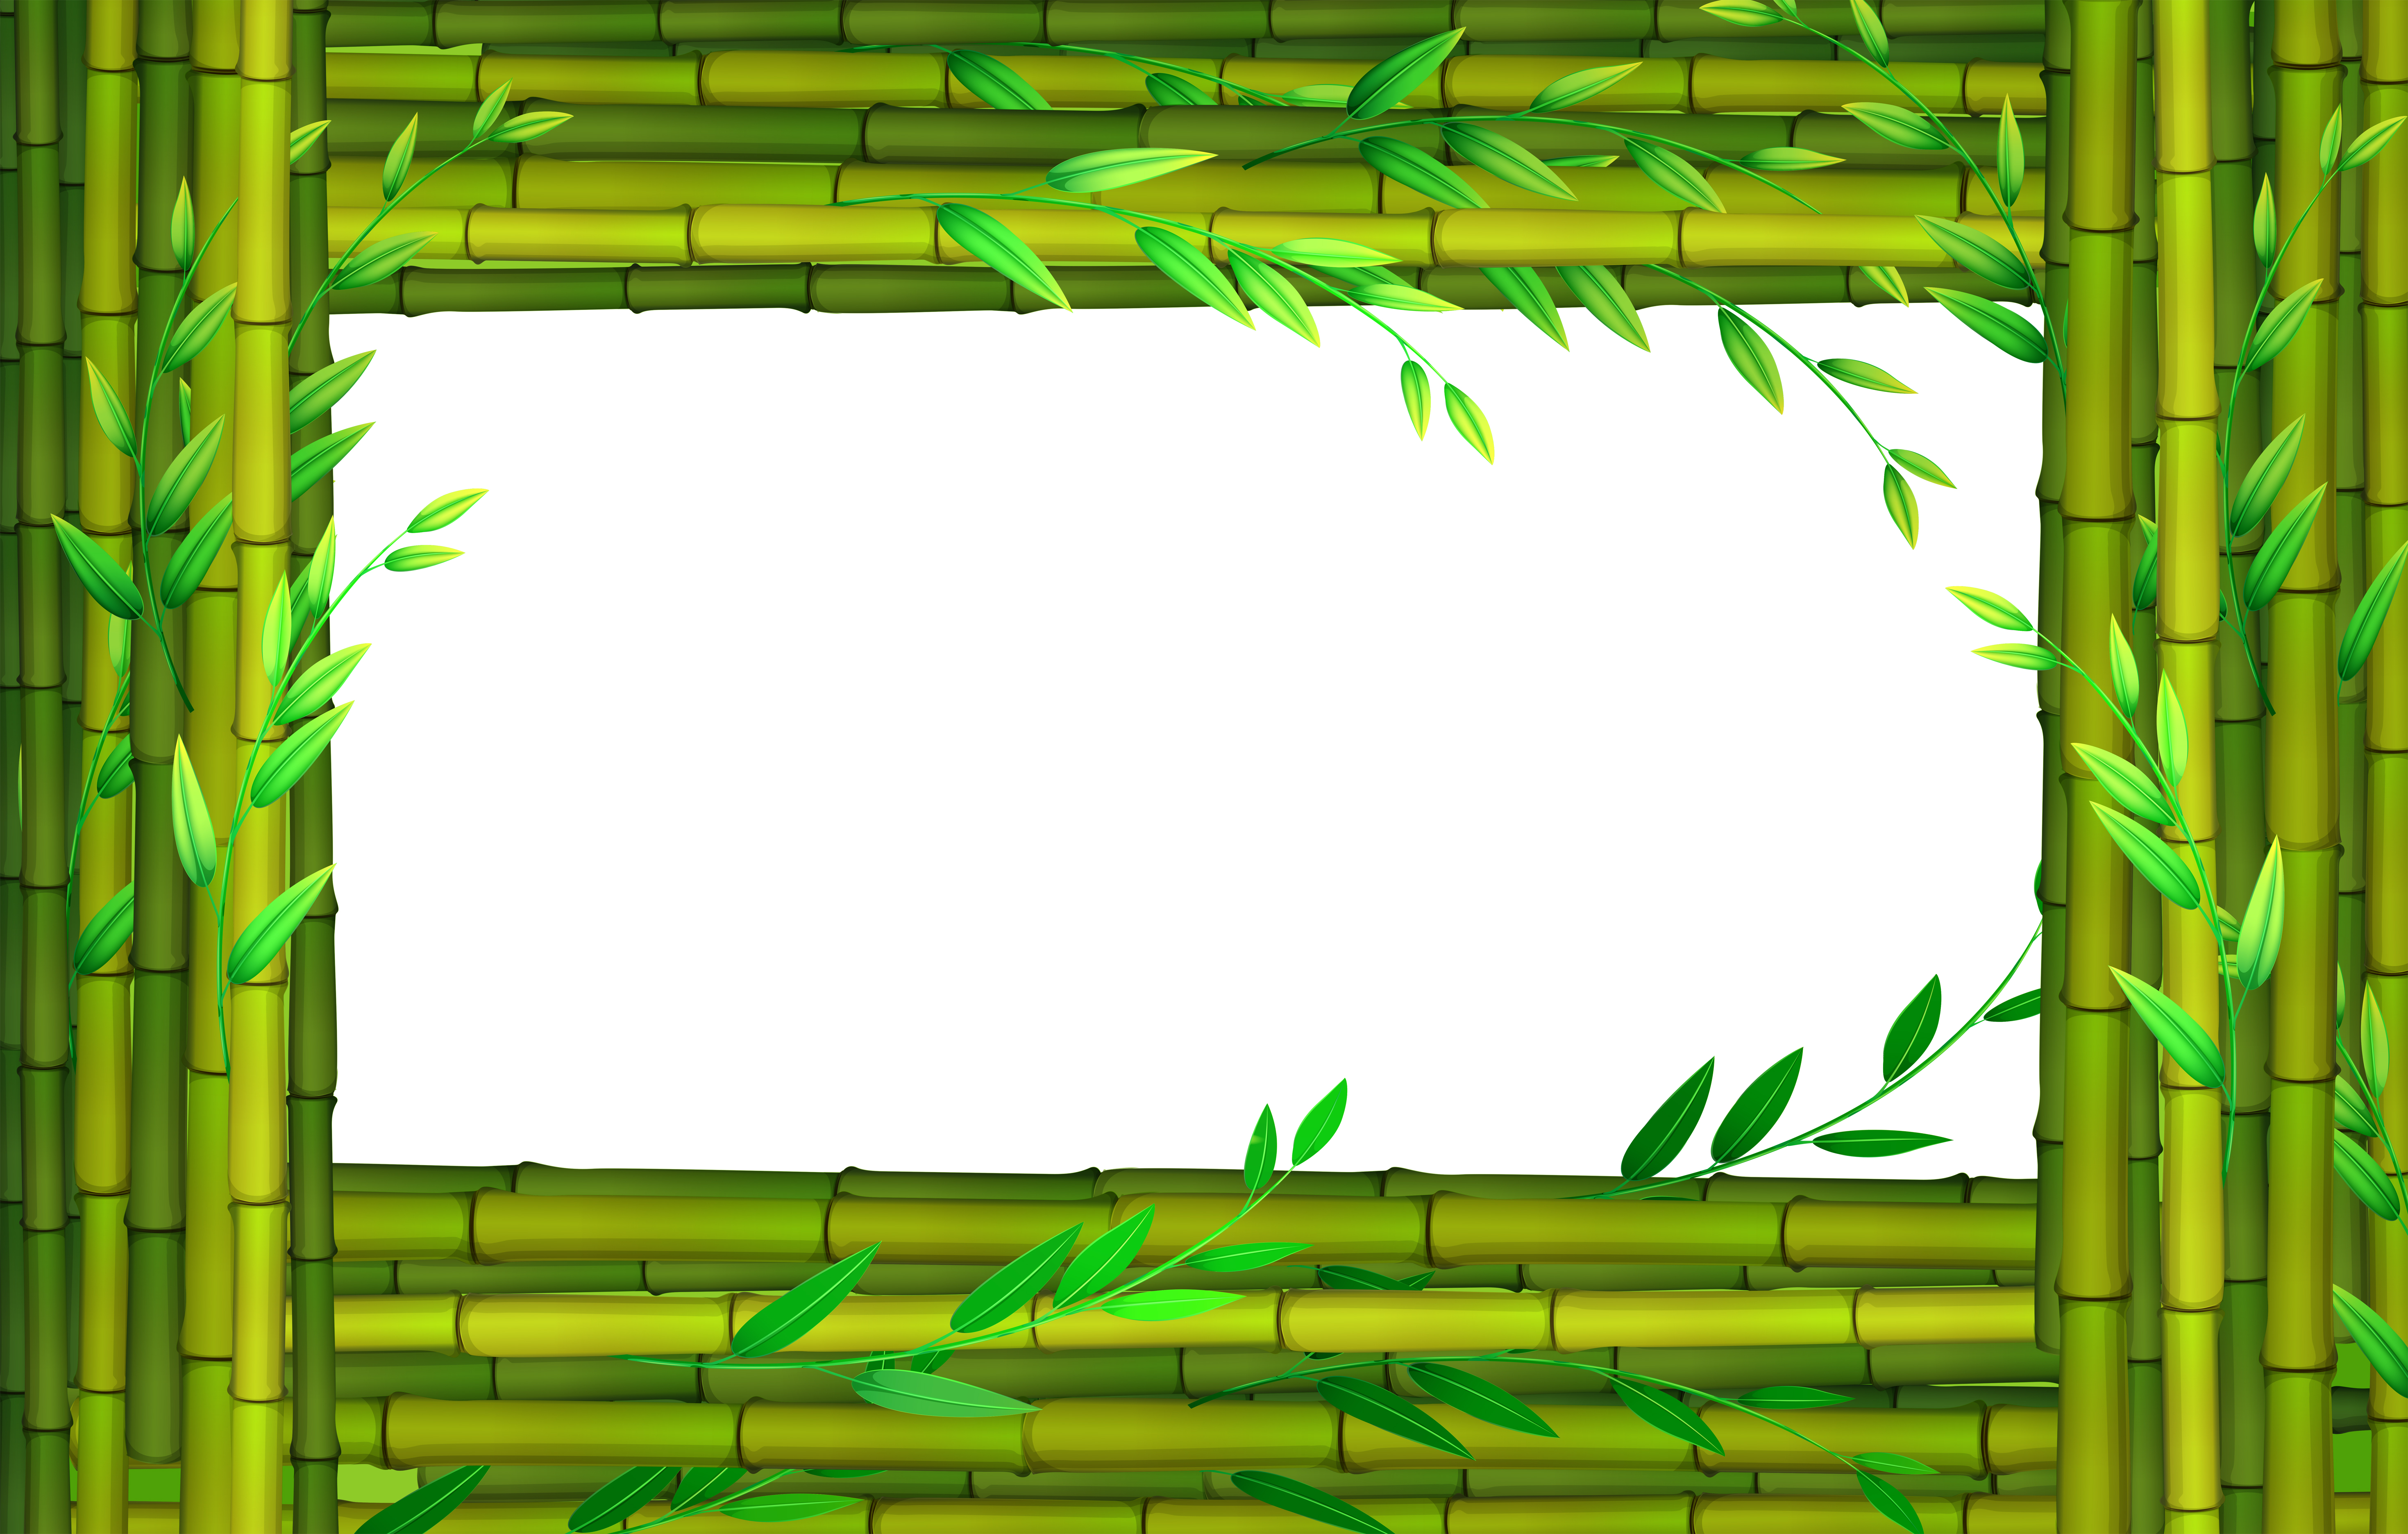 Border design with bamboo sticks - Download Free Vectors ...